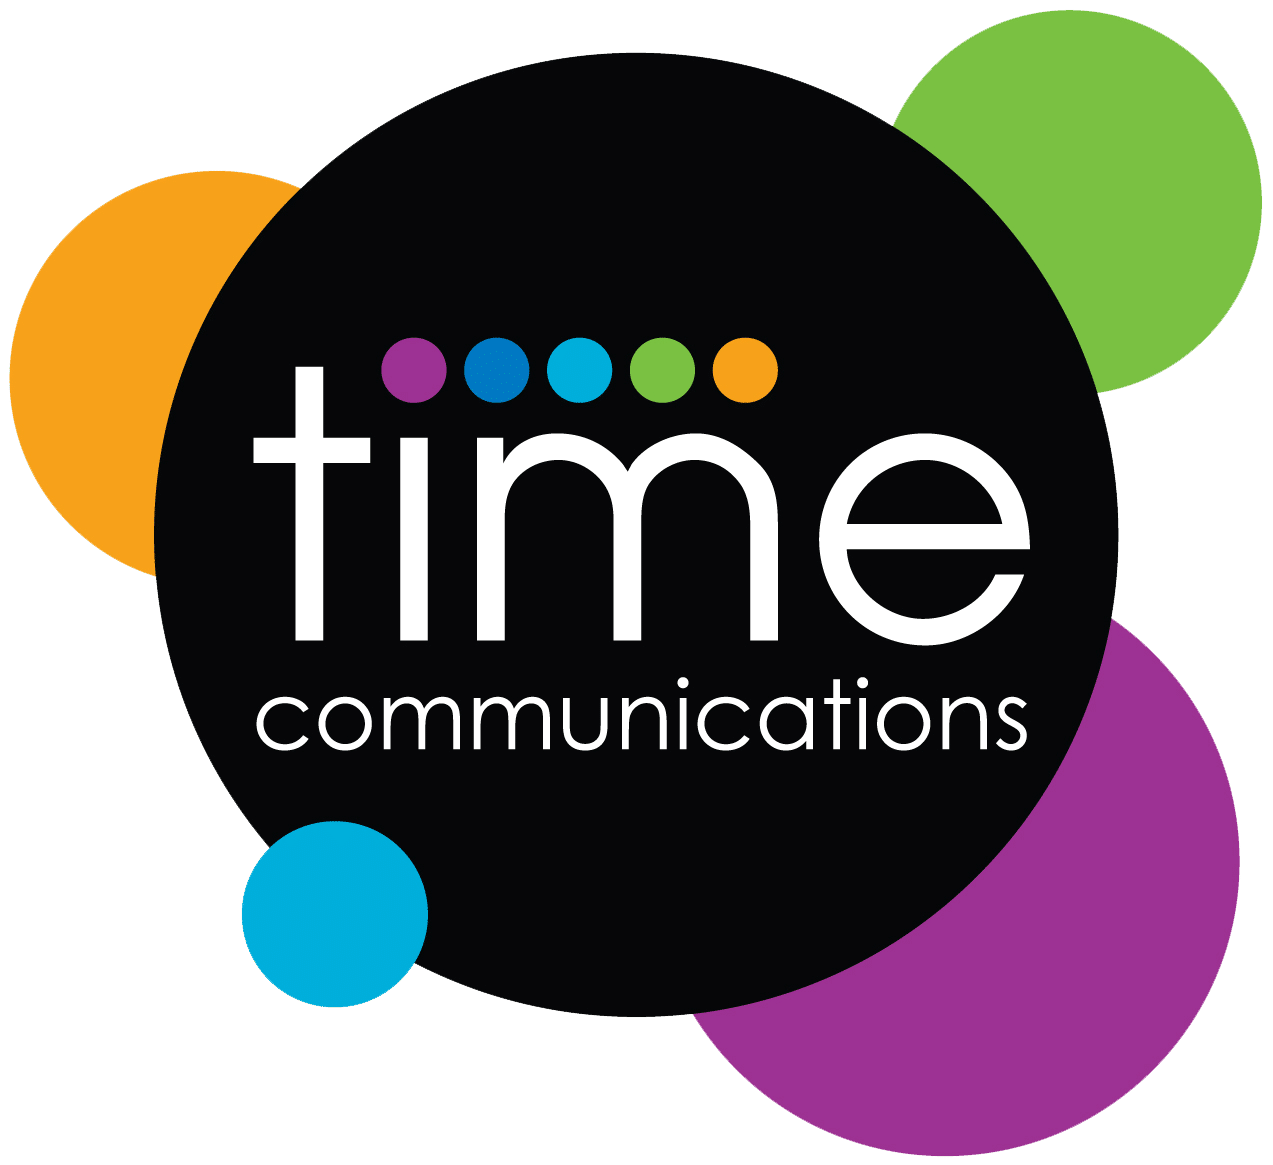 Time communications